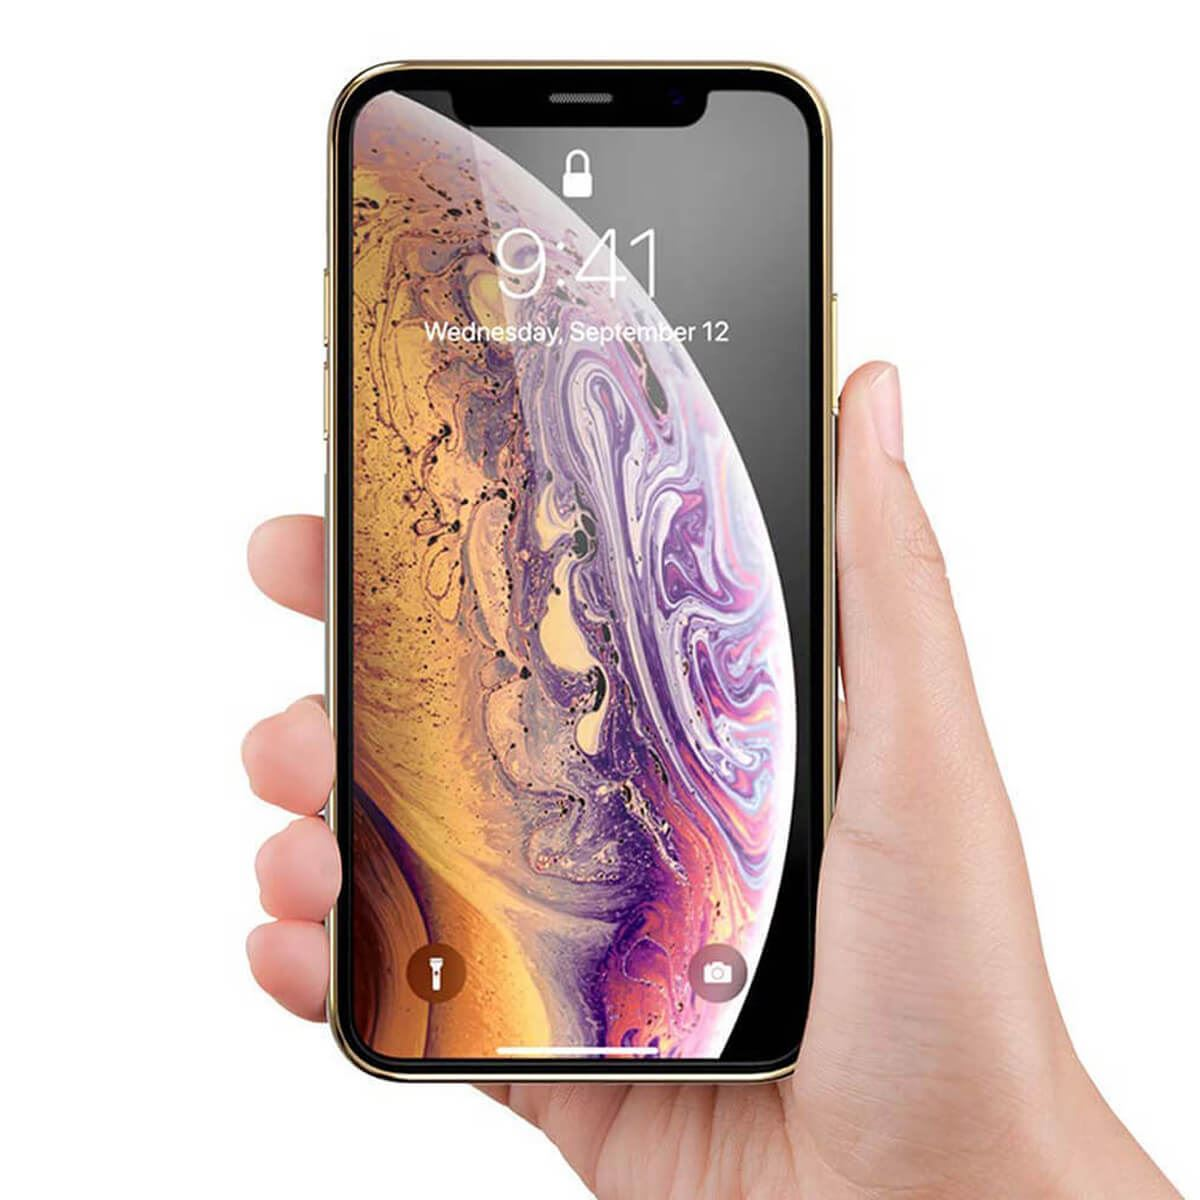 Tempered-Glass-Film-Screen-Protector-For-iPhone-12-Pro-Max-Mini-XR-XS-Max-8-7-6s thumbnail 31